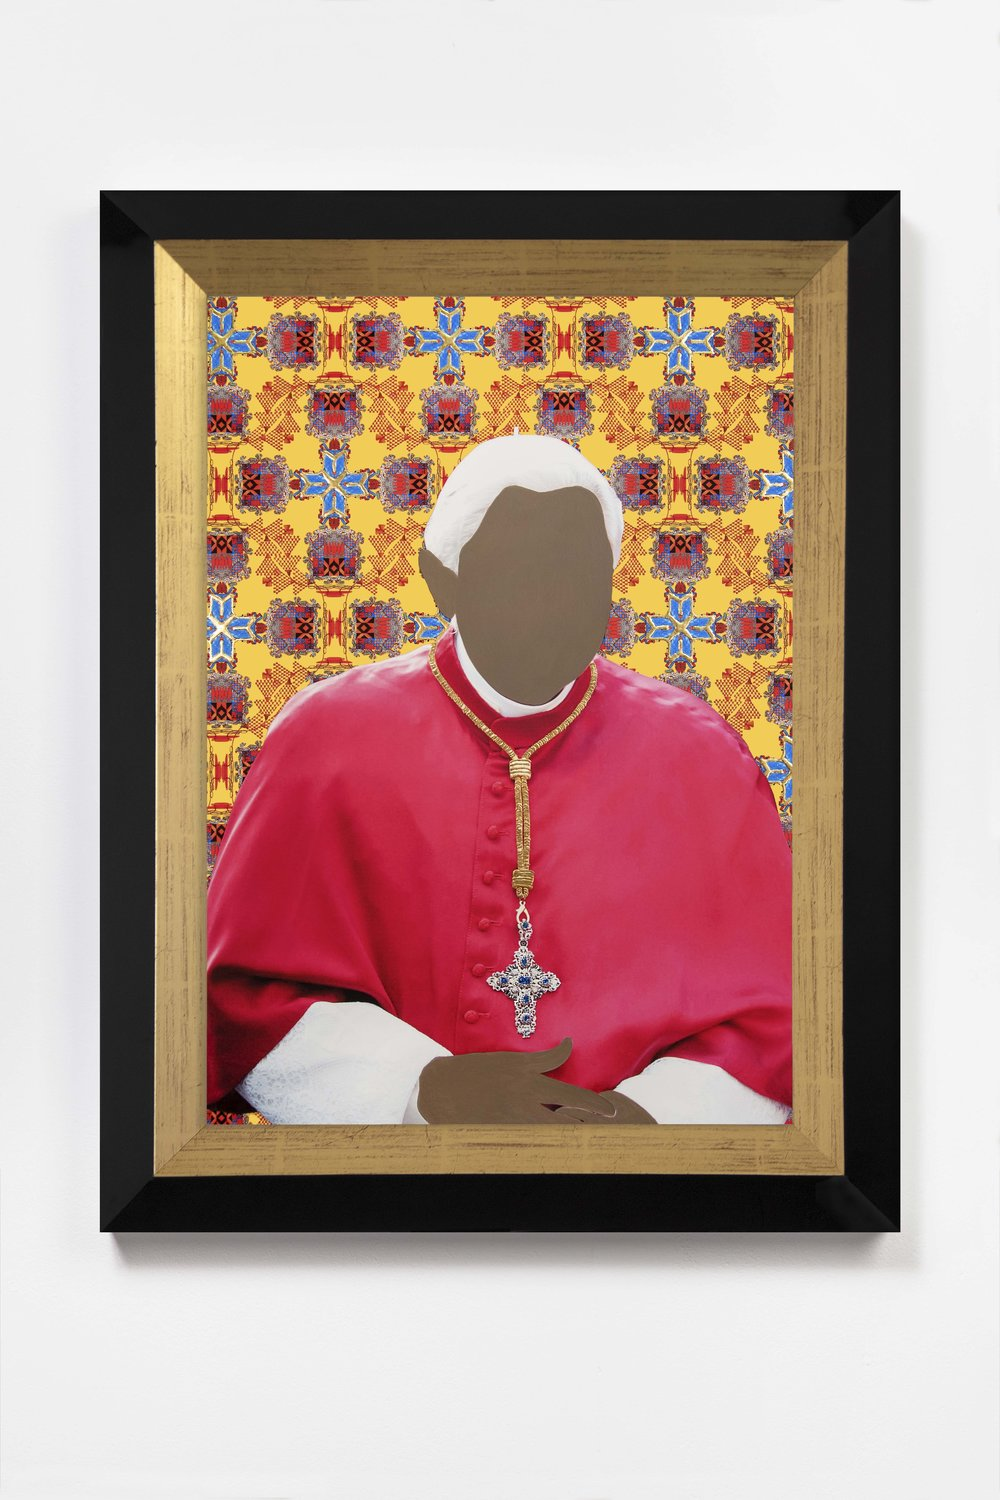 Encounter, Crimson  2018 © Nicola Green  Painting, on giclée with hand applied 24K gold and silver leaf diamond dust, 308gsm Hahnemuhle   H52 x W40 cm   £5,900 including frame and VAT   H64 x W47 cm   £8,500 including frame and VAT